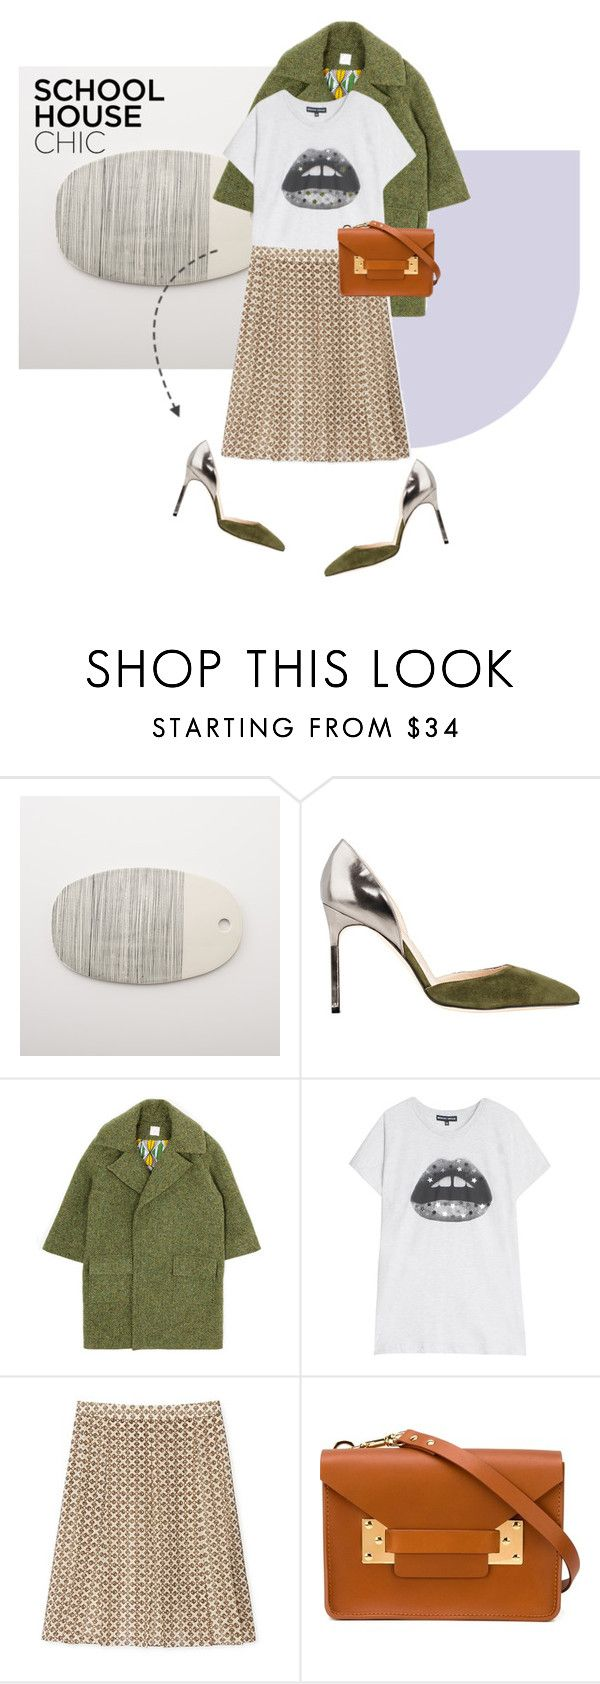 """""""Schoolhouse Chic"""" by pattykake ❤ liked on Polyvore featuring Therapy, Manolo Blahnik, Stella Jean, Markus Lupfer, Tory Burch, Sophie Hulme, ToryBurch, manoloblahnik, stellajean and SophieHulme"""